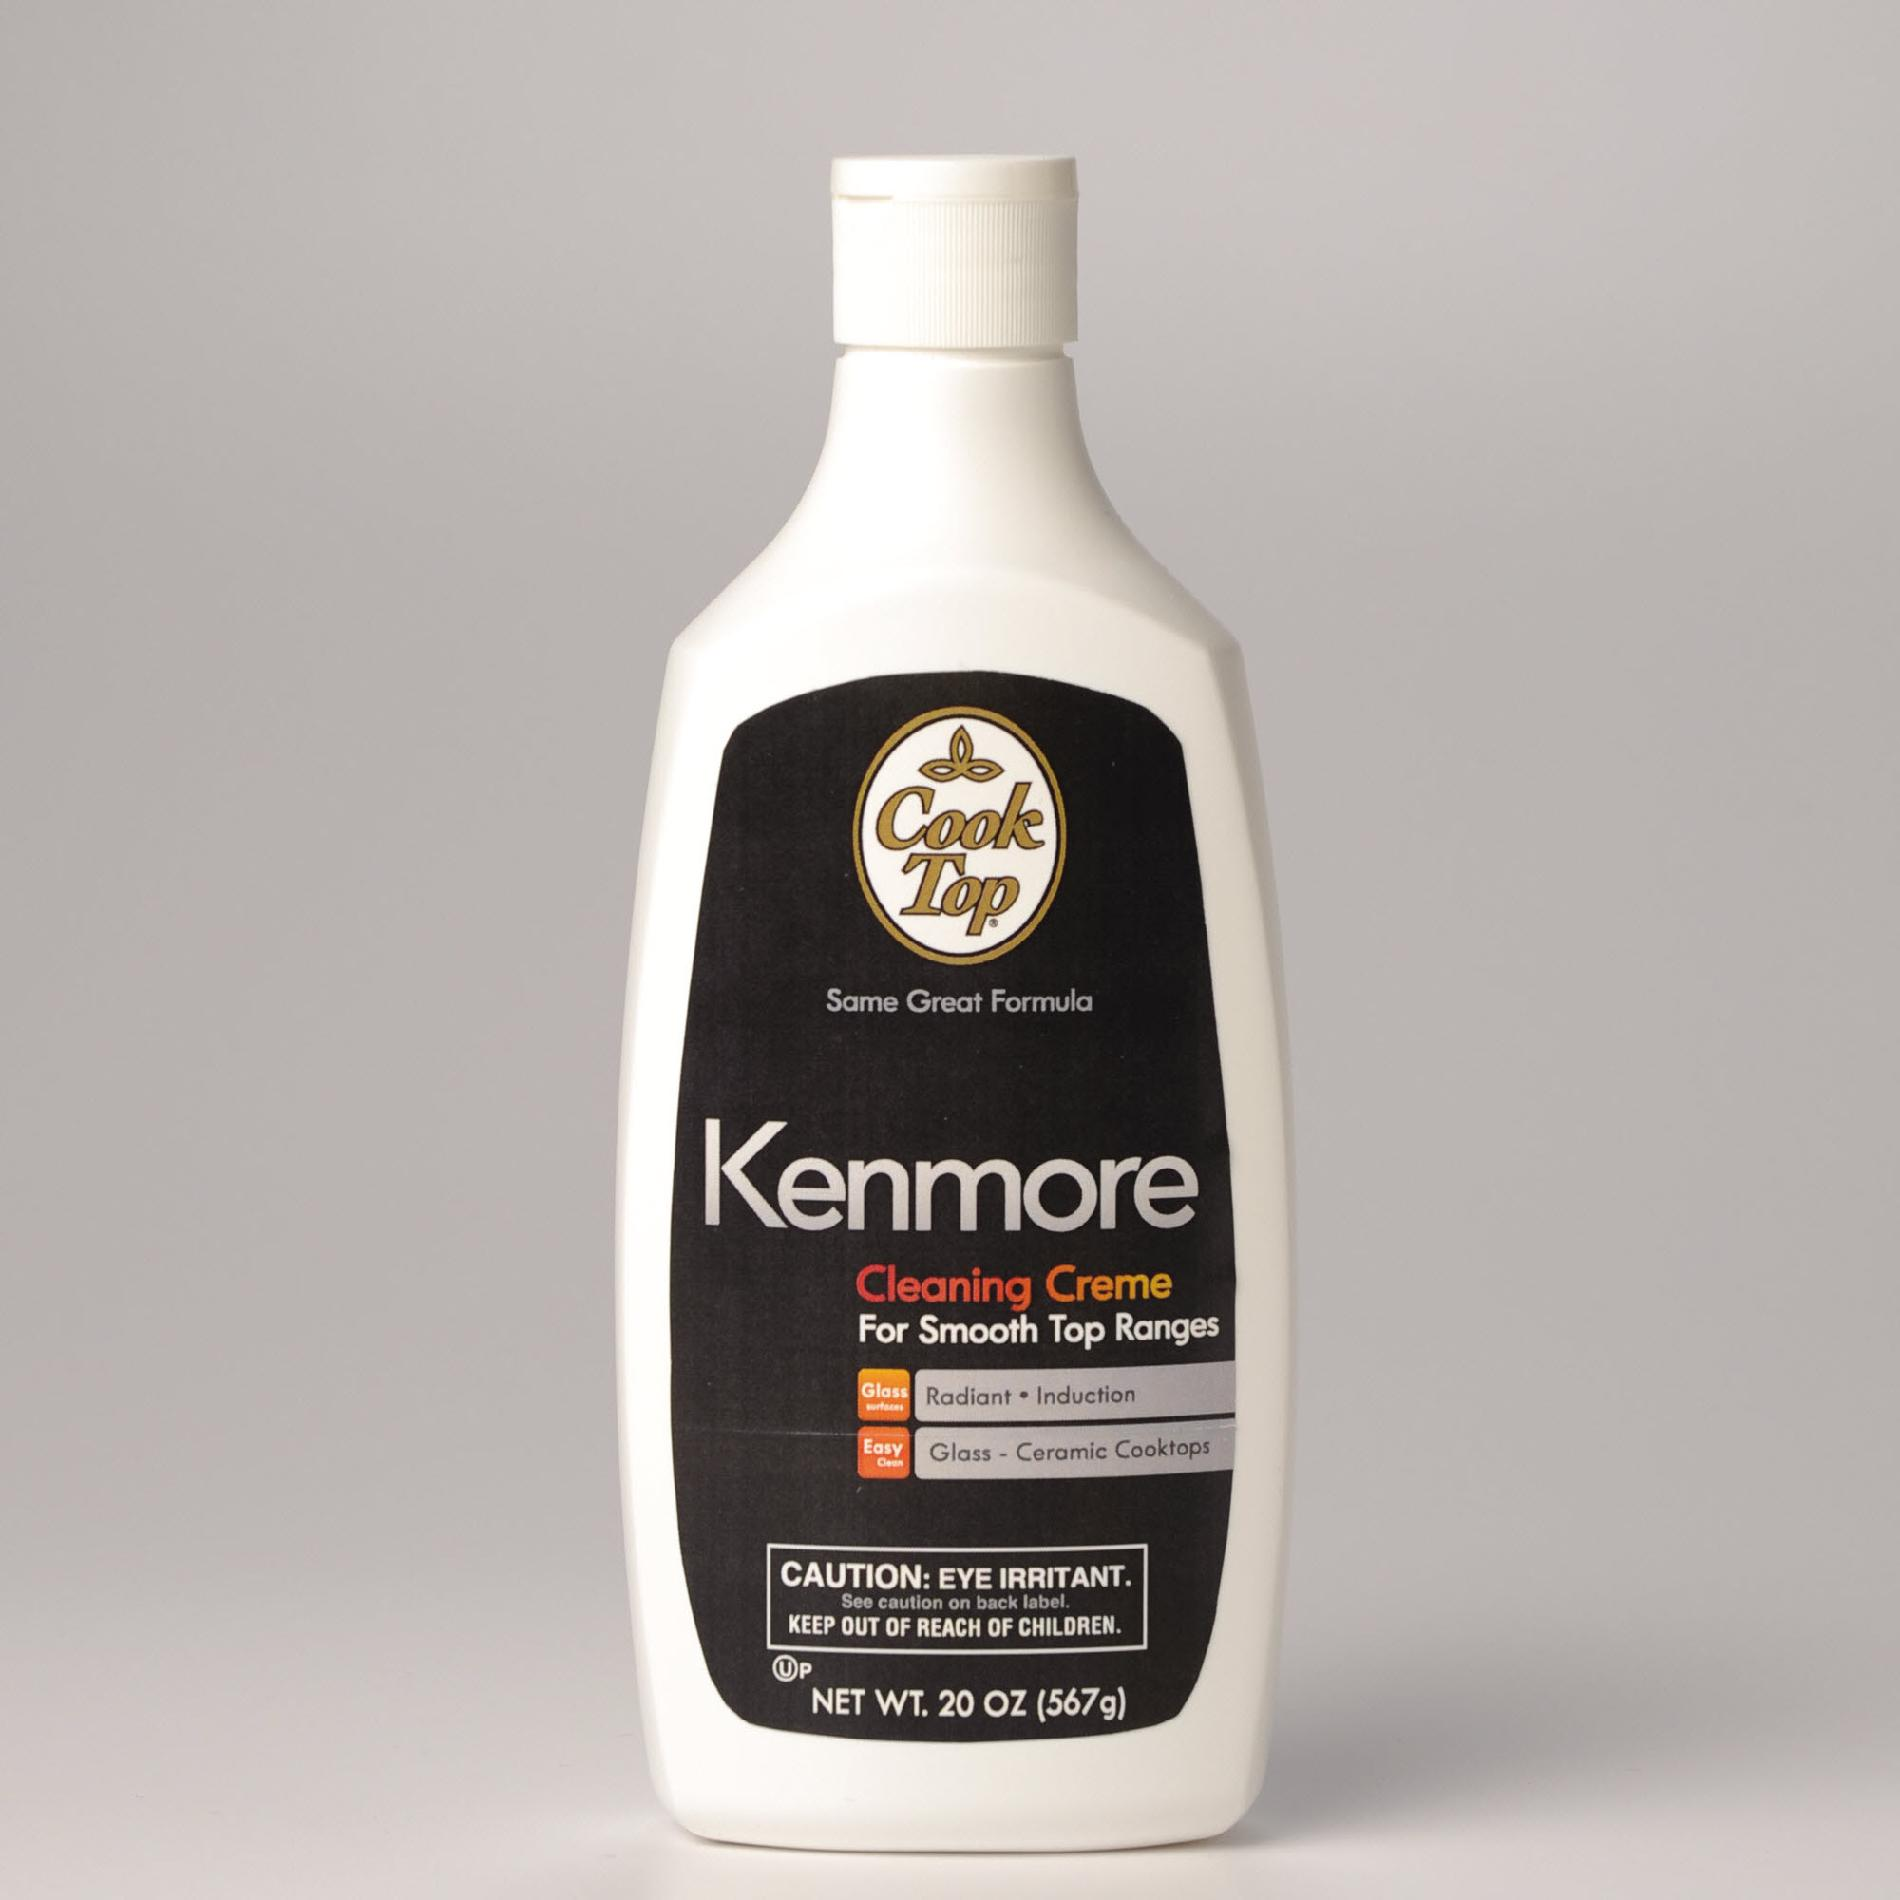 Kenmore Cooktop Cleaning Cream For Smooth Top Ranges